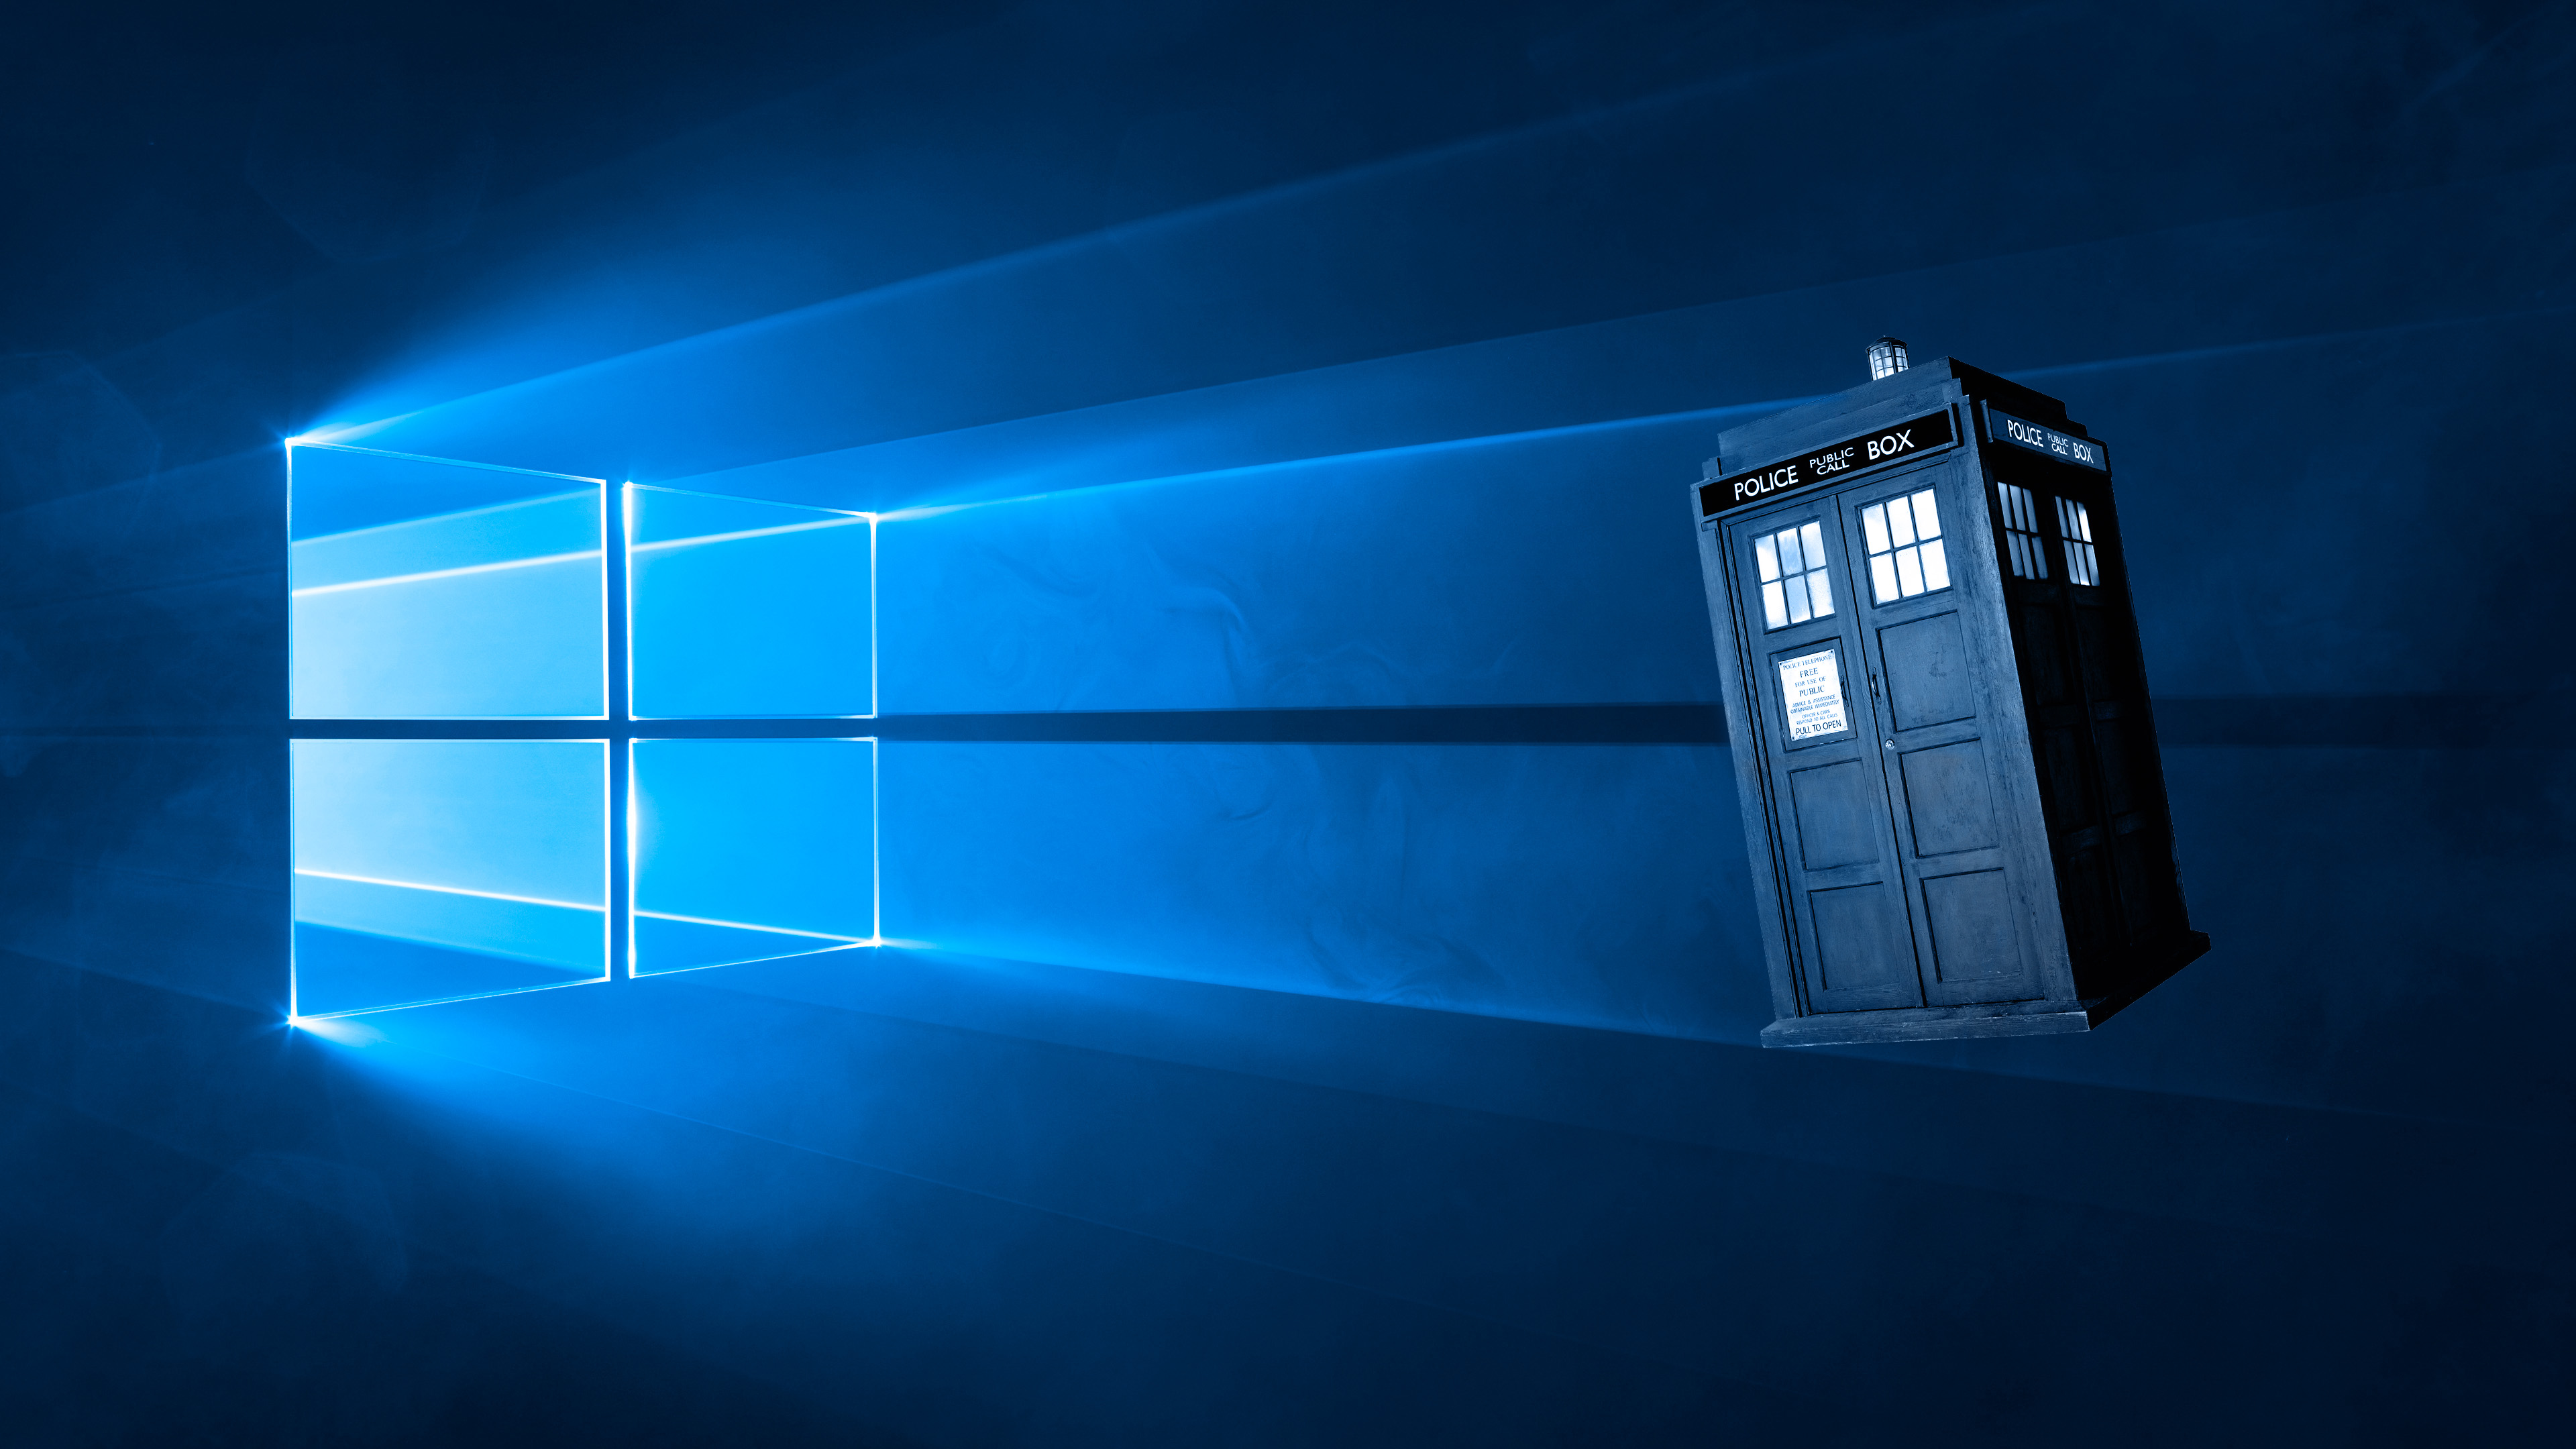 tardis images hd wallpaper - photo #30